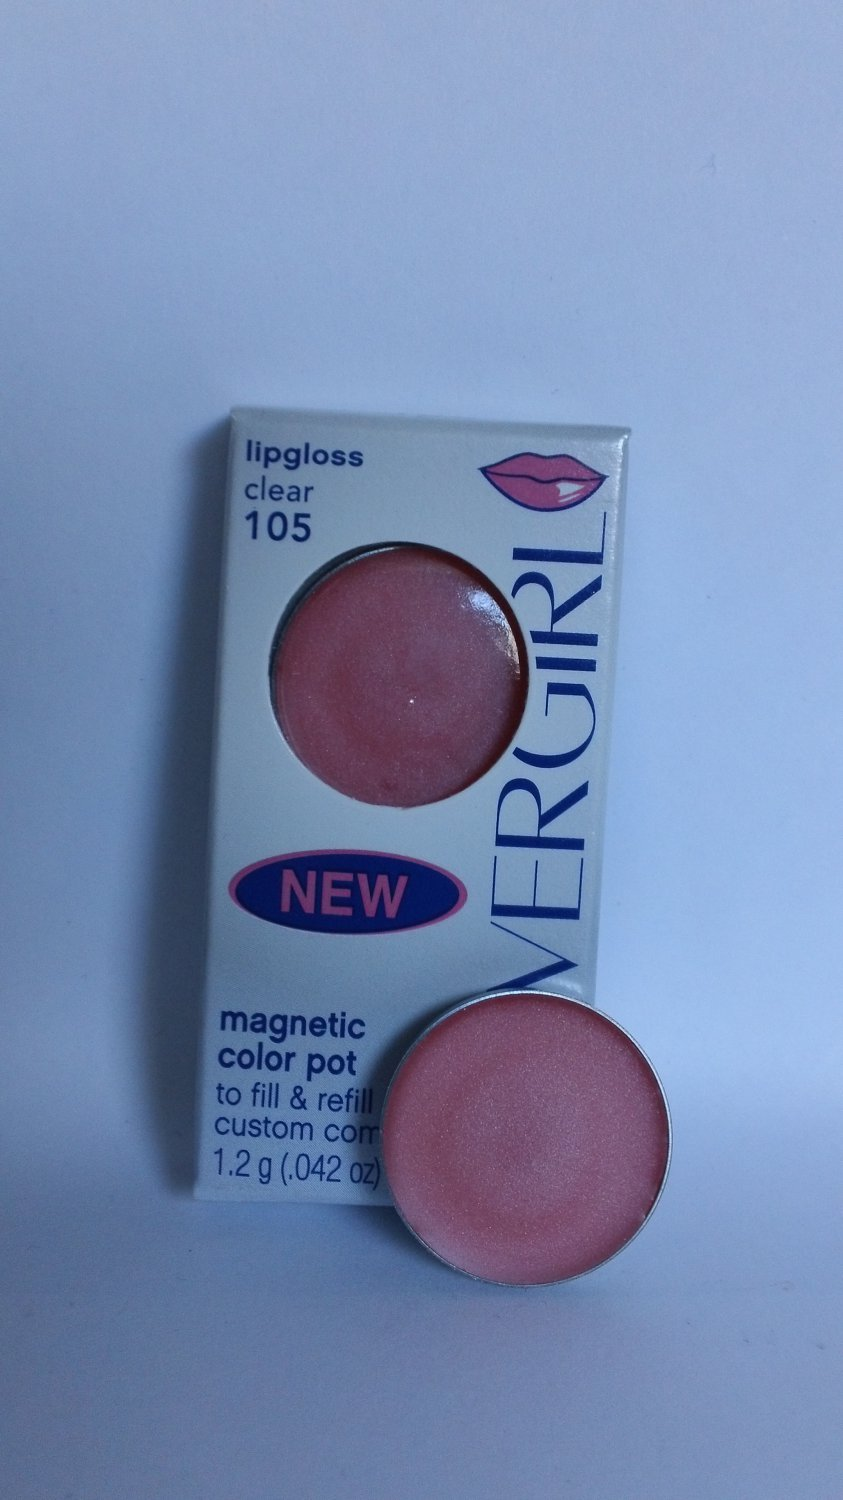 CoverGirl Magnetic Color Pot Lip Gloss #105 Clear